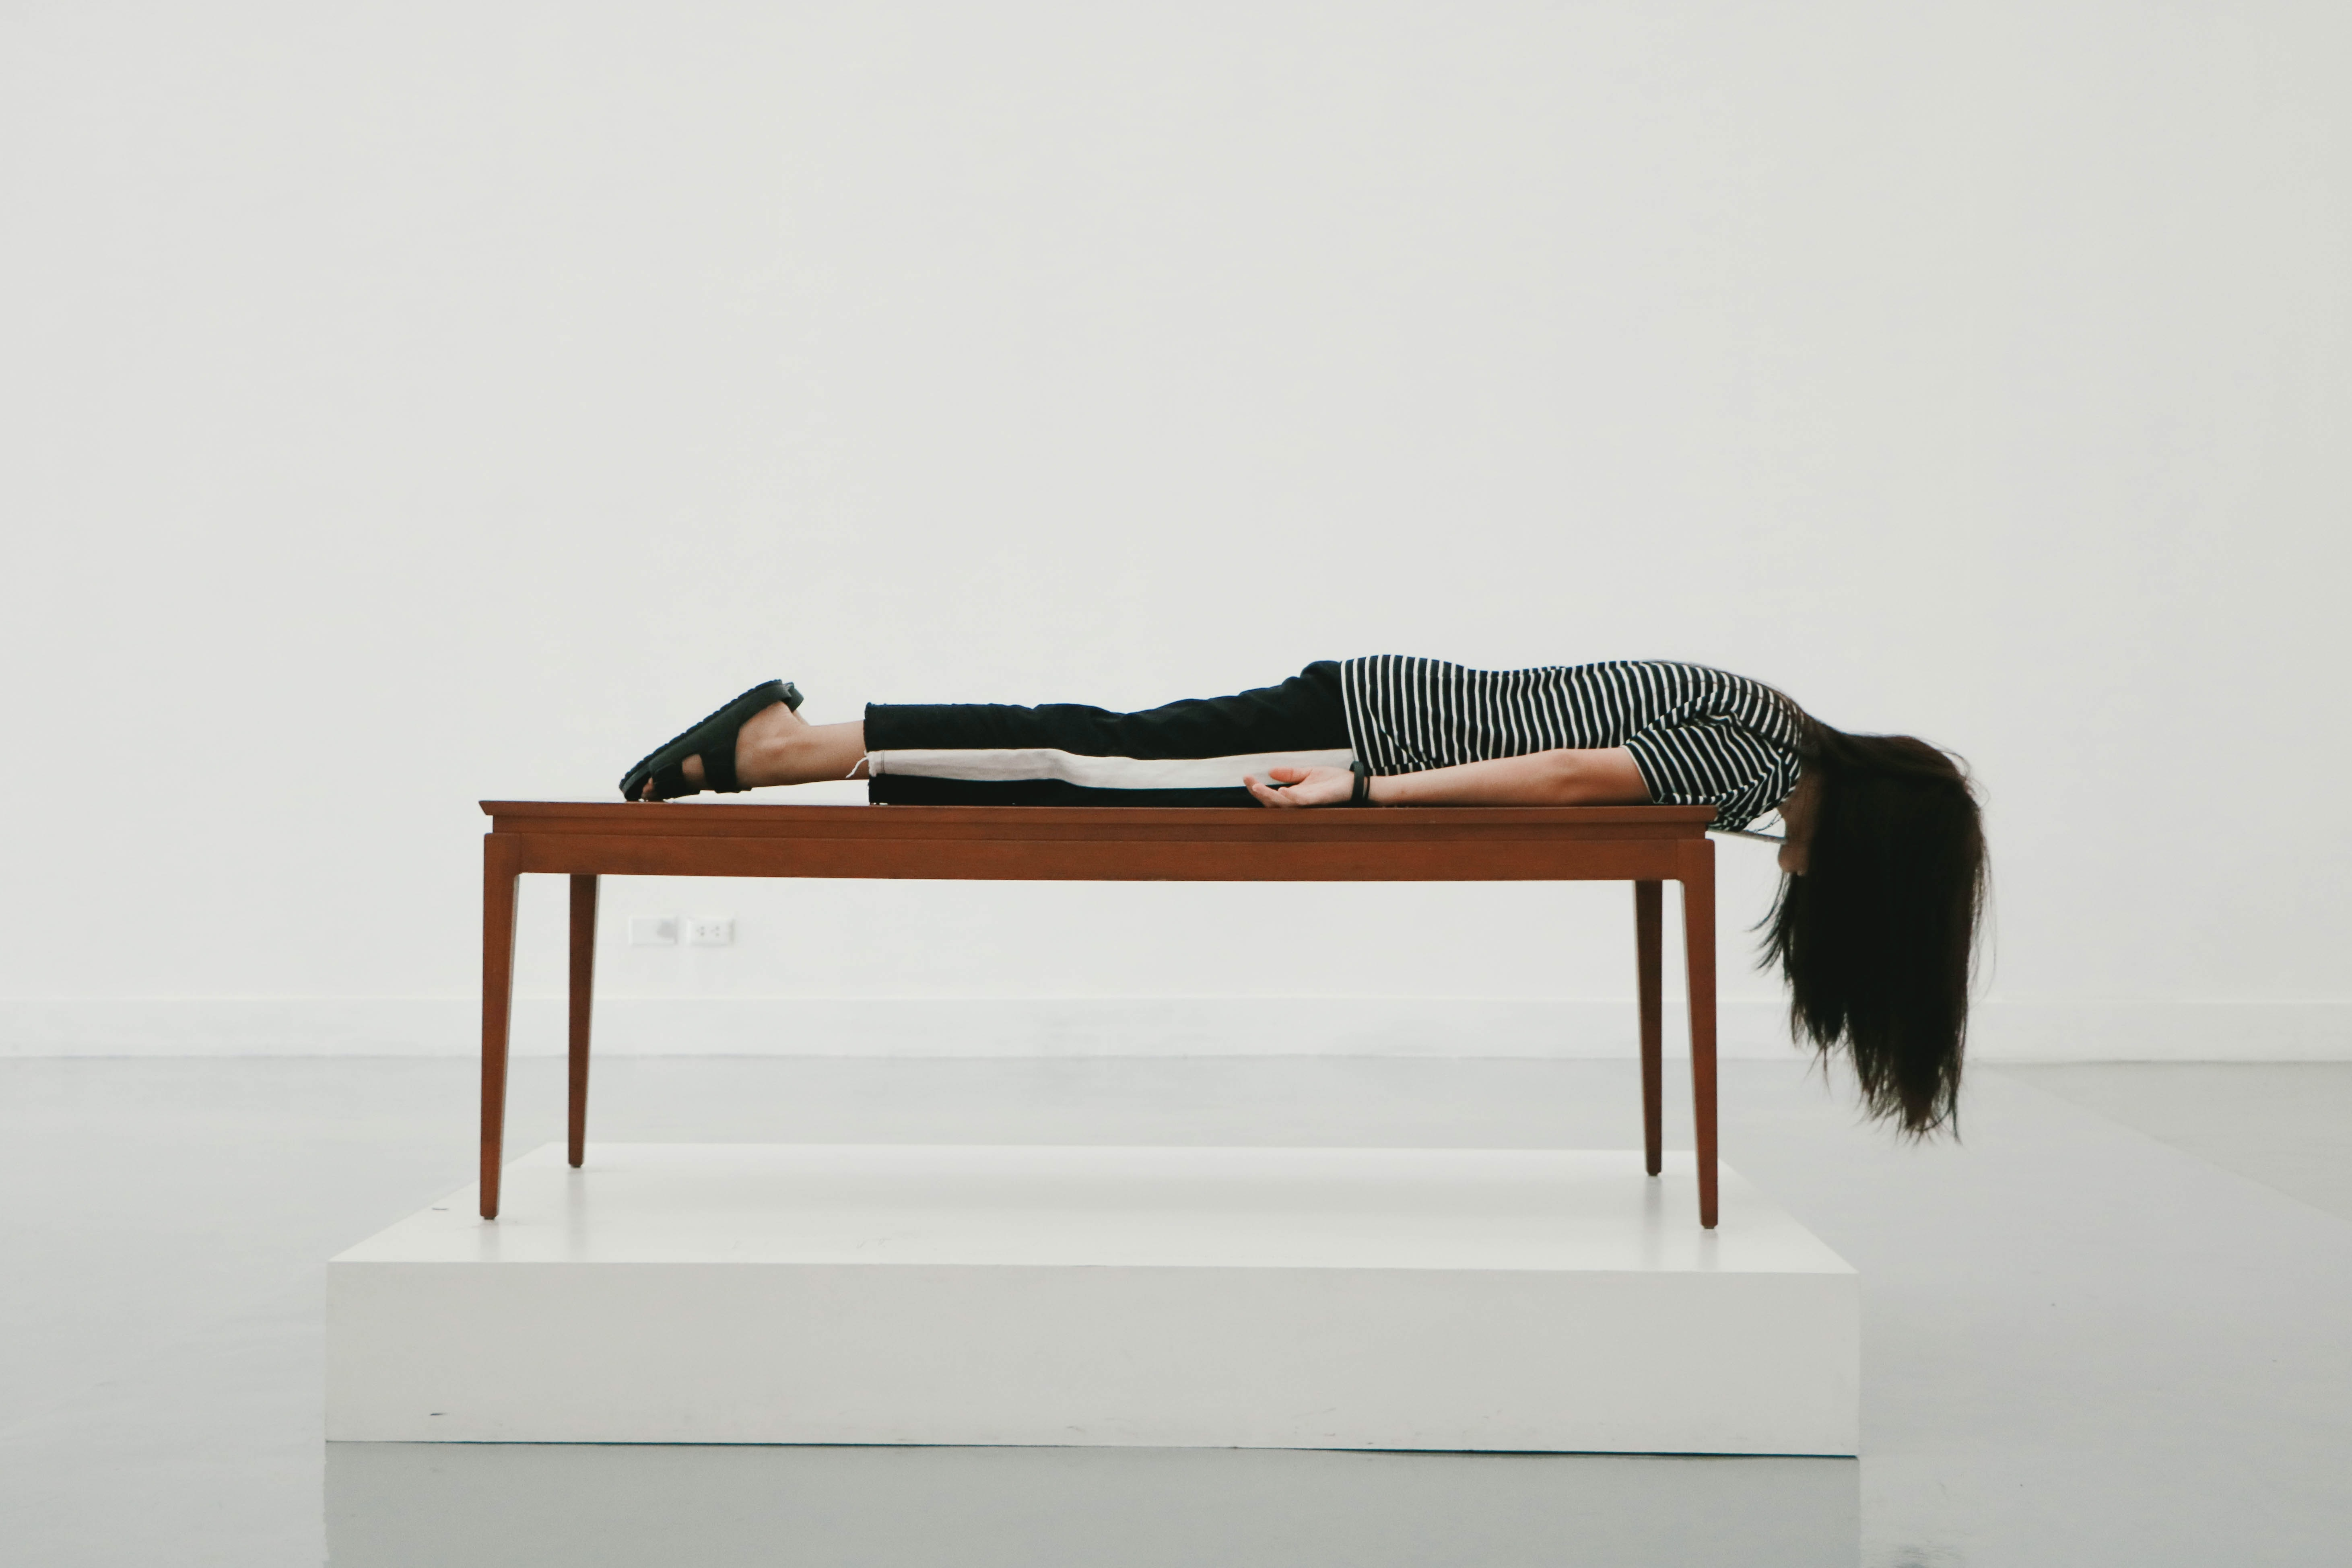 Lady at the Bangkok Art and Culture Centre lays on stomach on a wood table